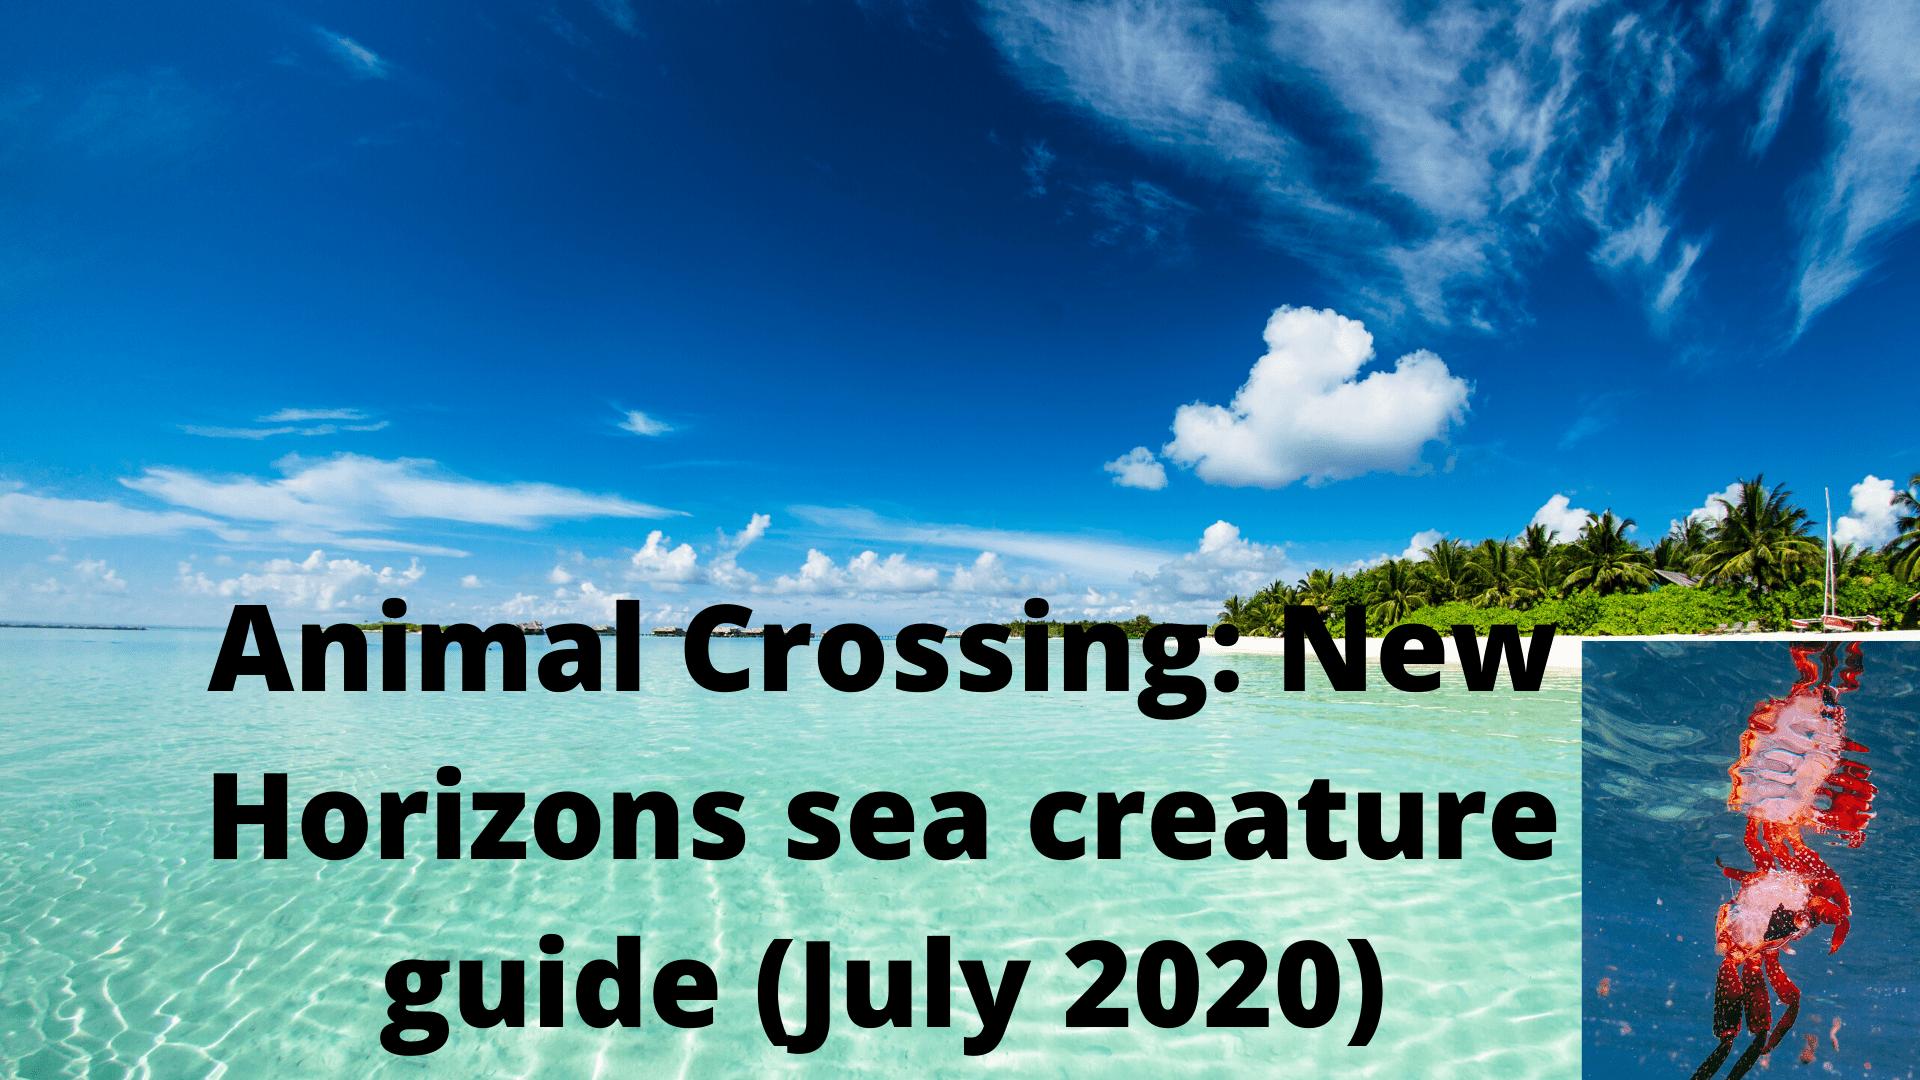 Animal Crossing: New Horizons sea creature guide (July 2020)